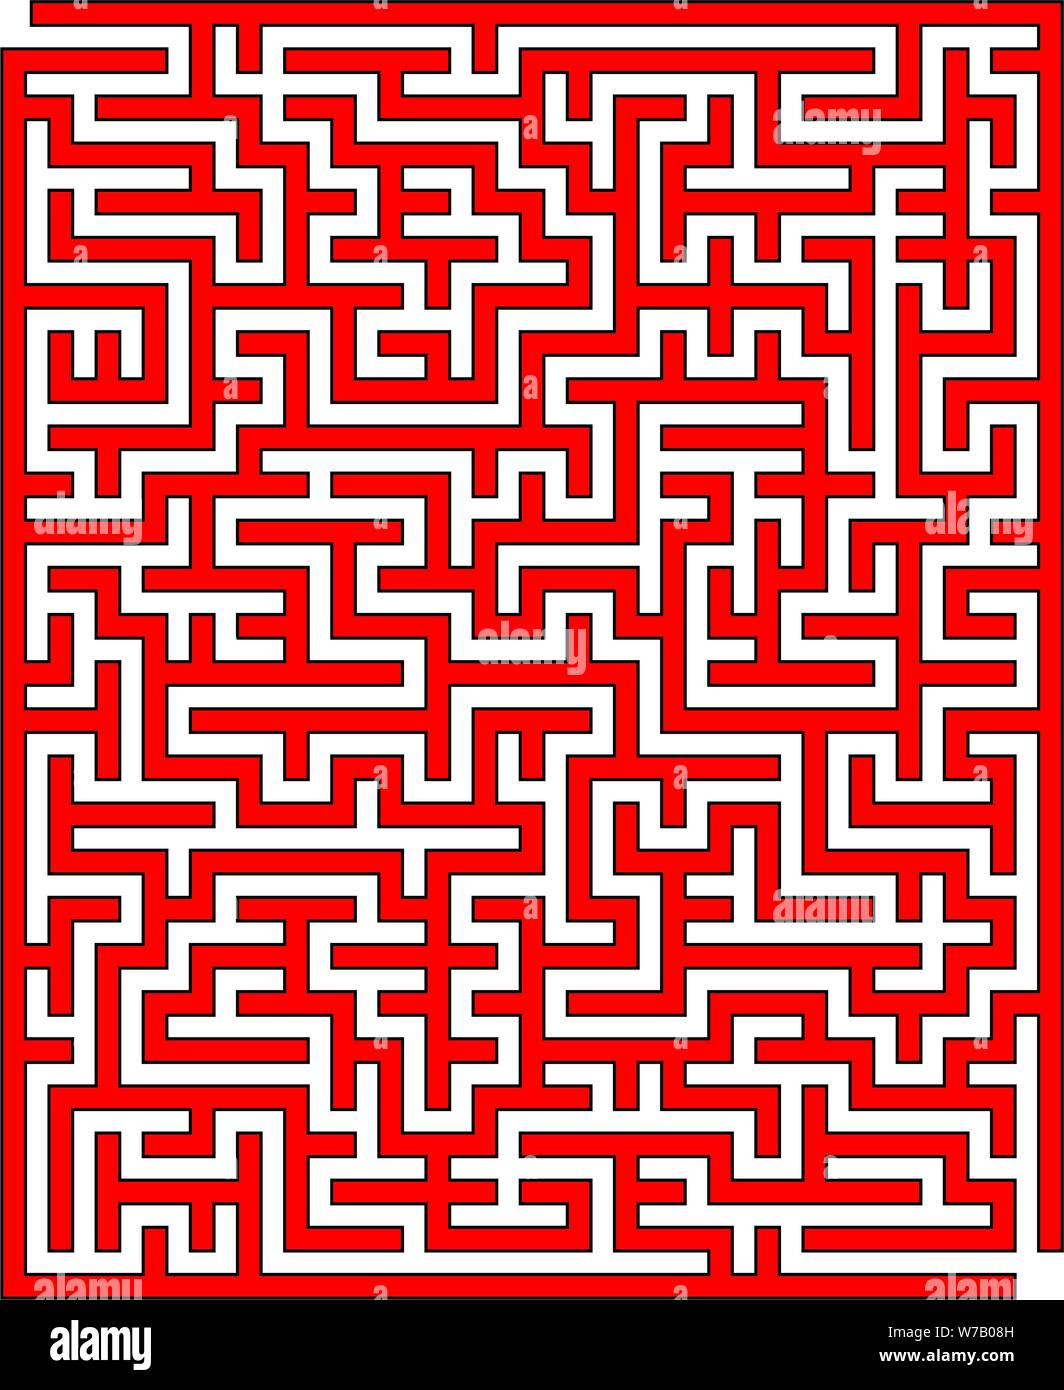 Labyrinth Template Stock Photos & Labyrinth Template Stock